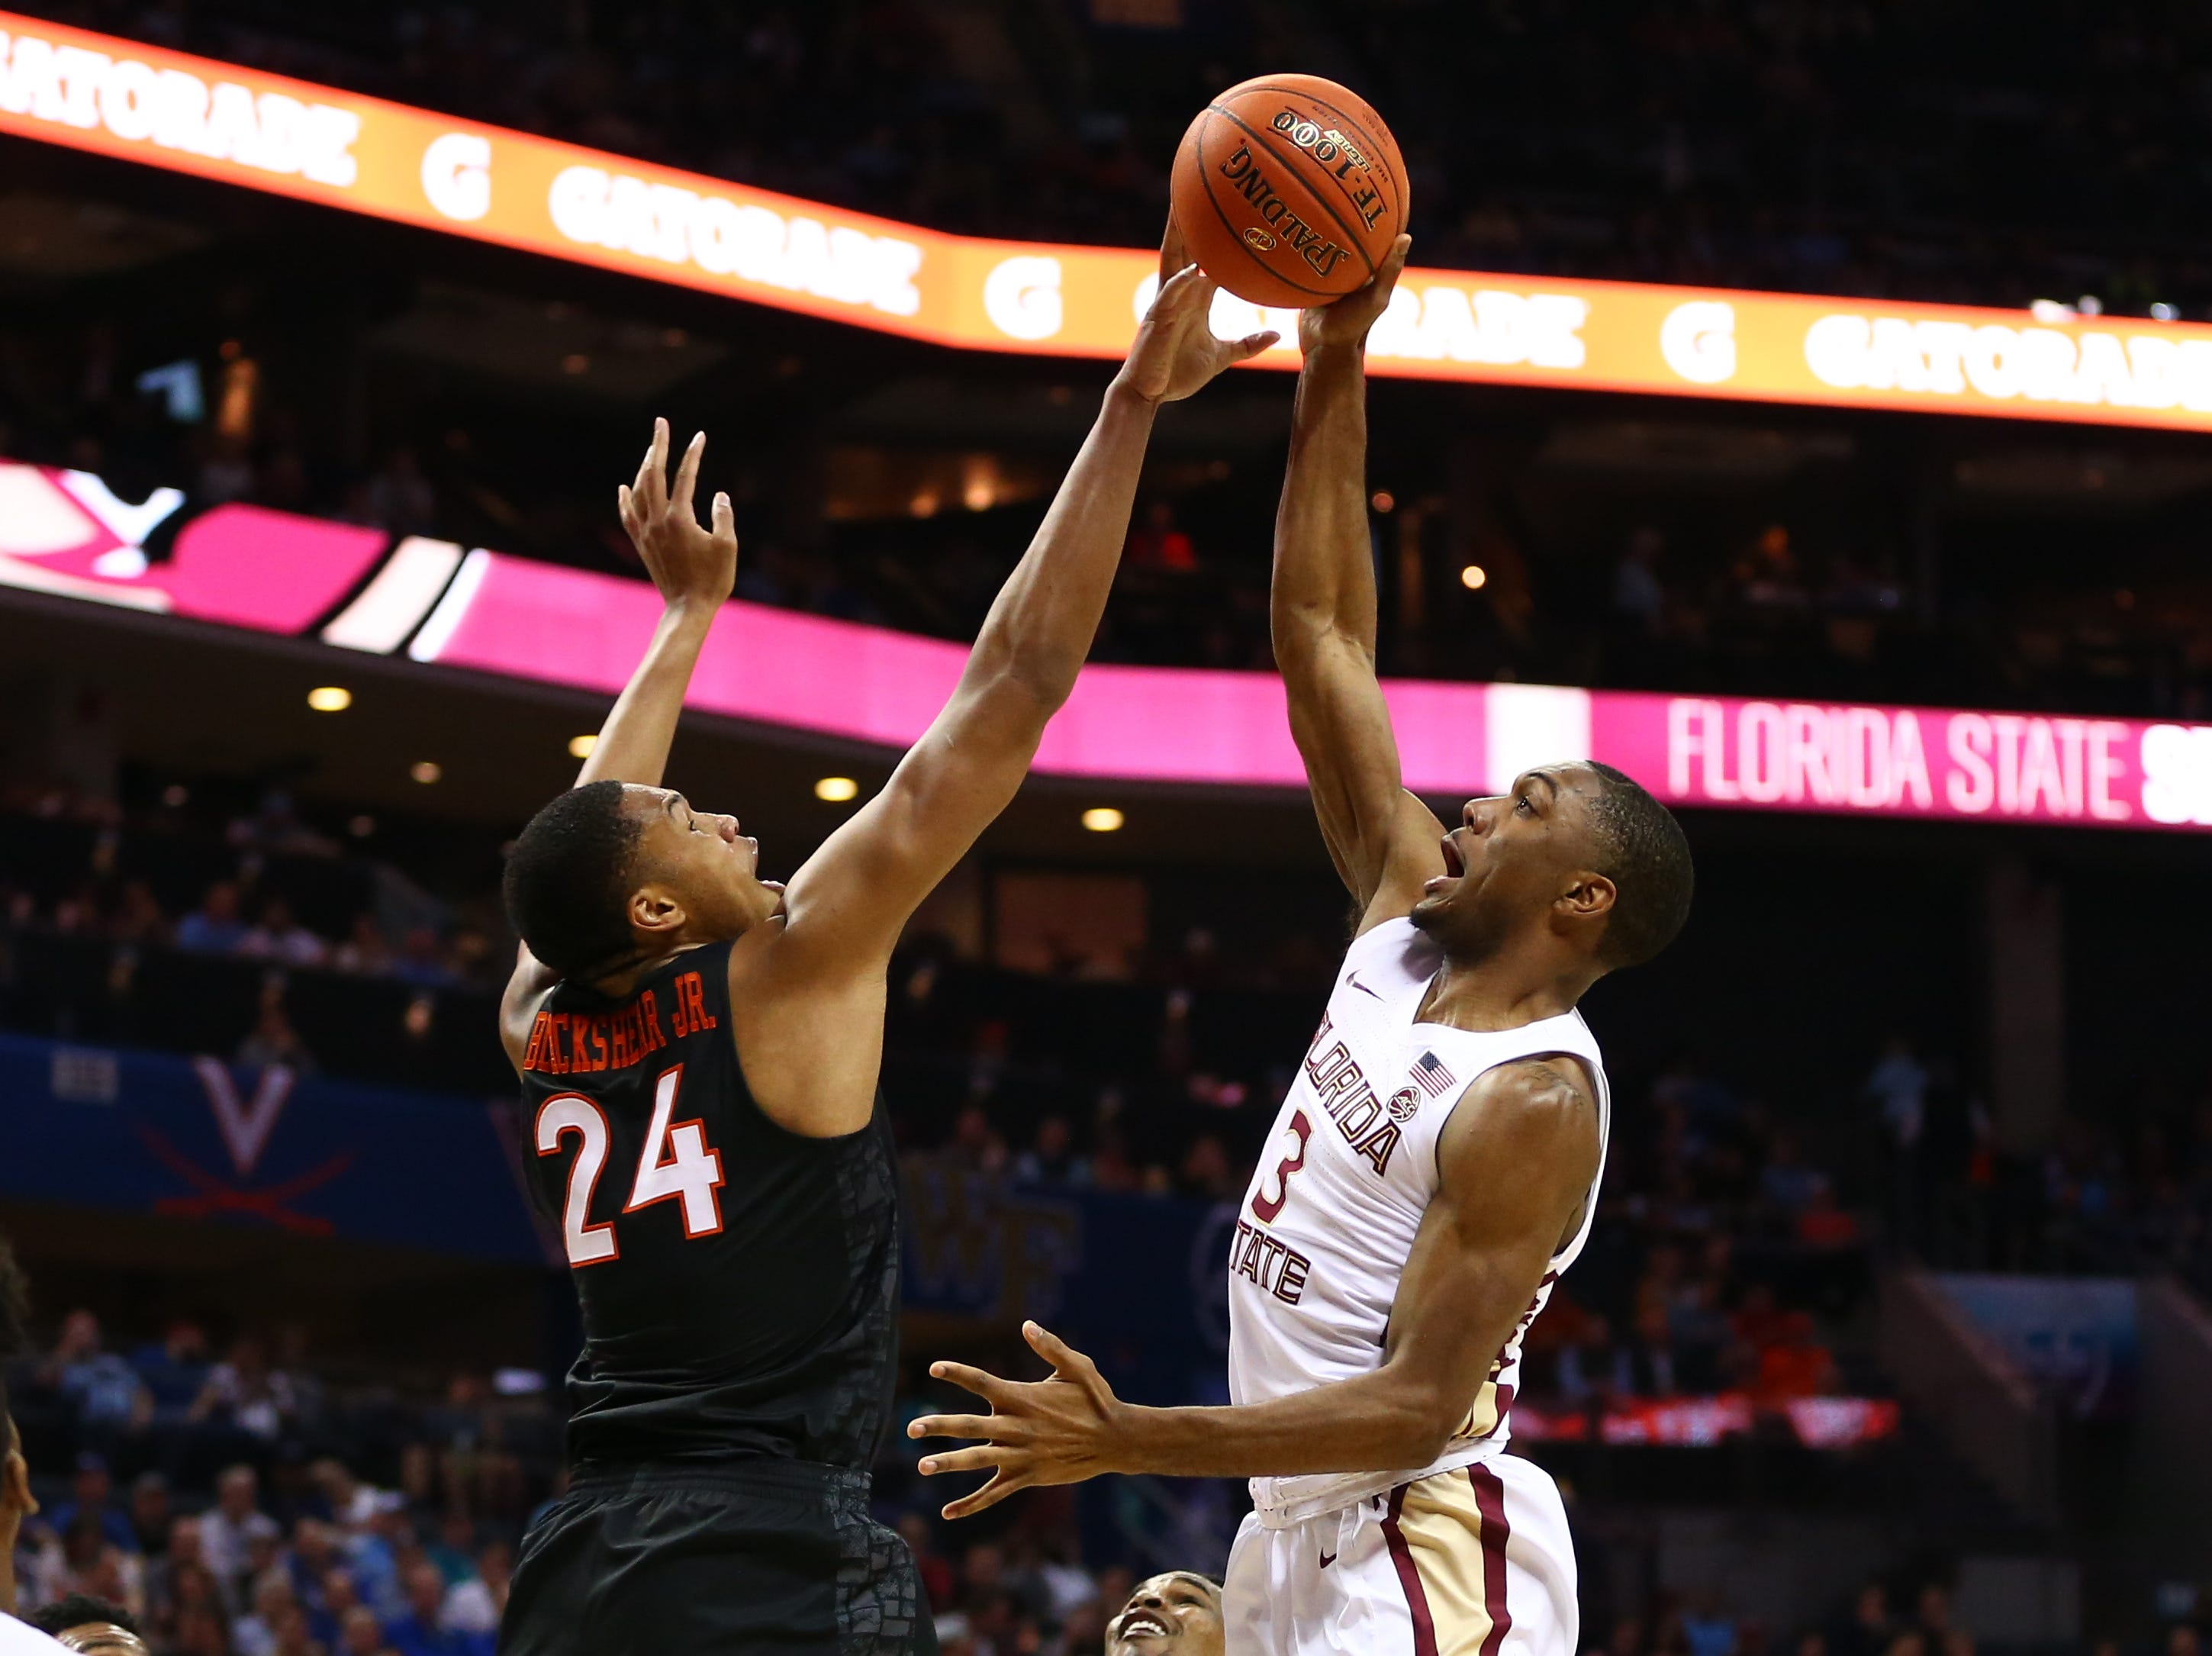 Mar 14, 2019; Charlotte, NC, USA; Florida State Seminoles guard Trent Forrest (3) shoots the ball against Virginia Tech Hokies forward Kerry Blackshear Jr. (24) in the first half in the ACC conference tournament at Spectrum Center. Mandatory Credit: Jeremy Brevard-USA TODAY Sports